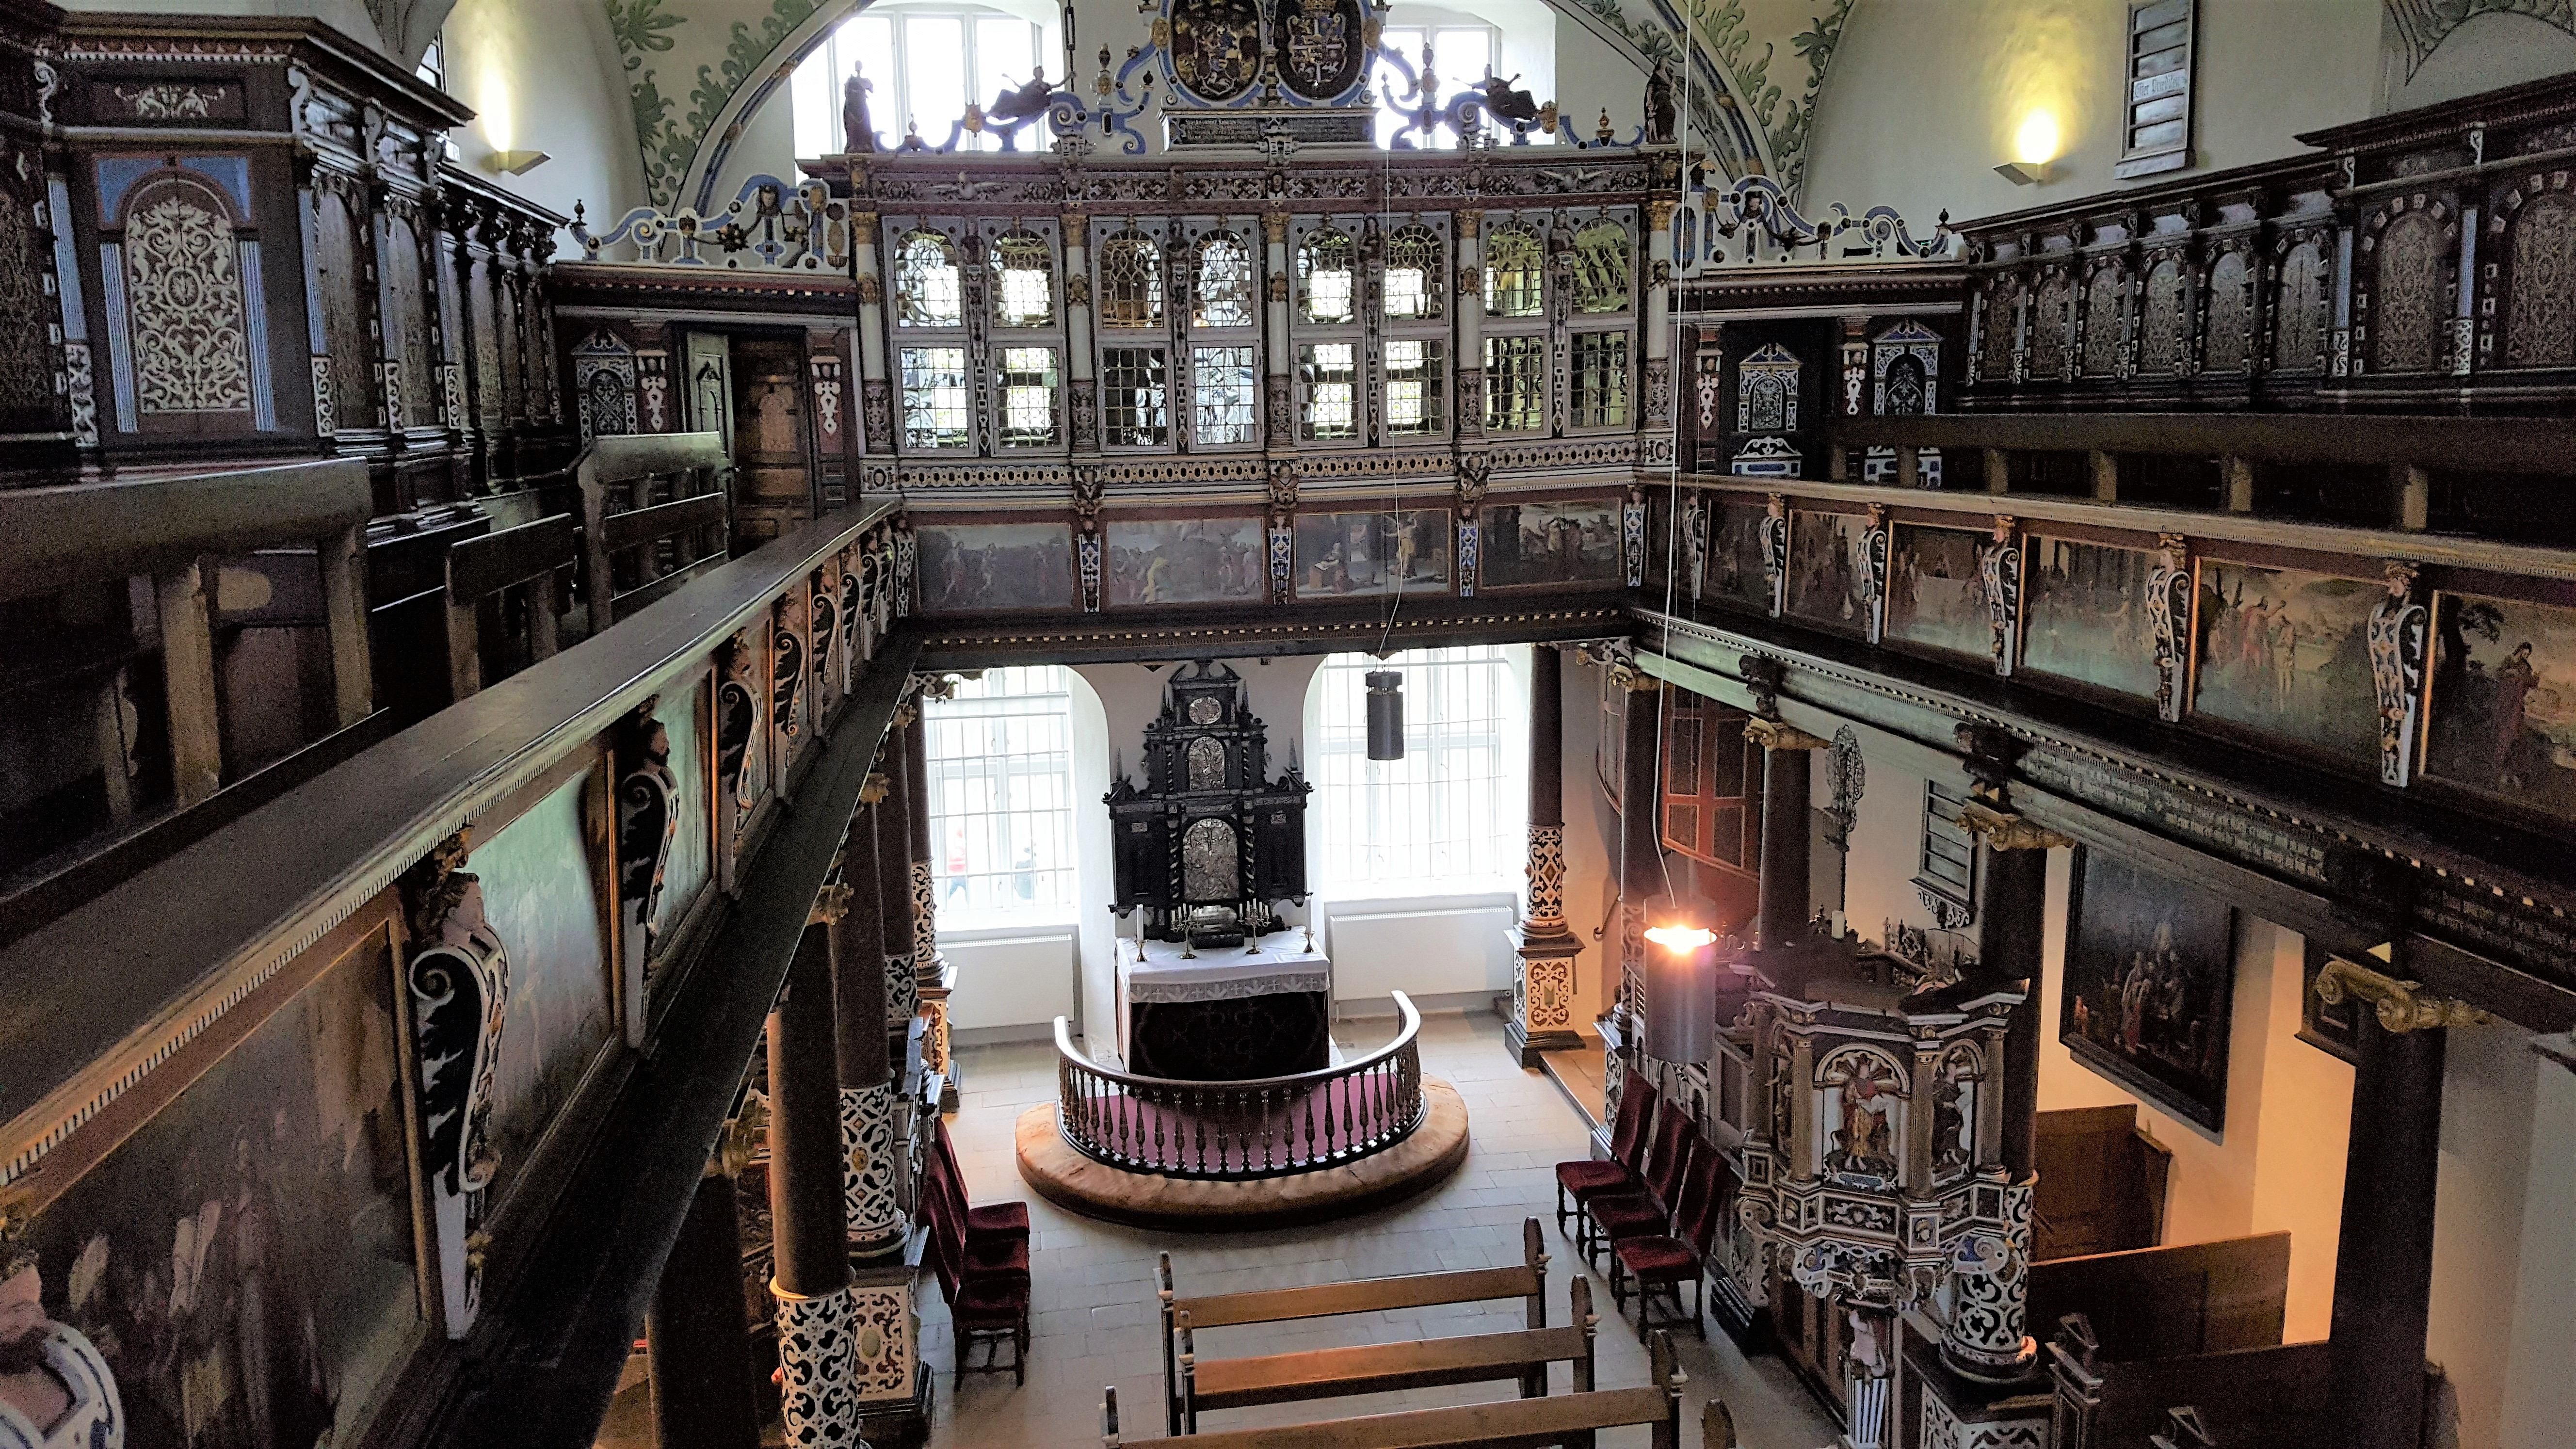 The chapel in Gottorf Castle, Schleswig. Photo by Dragonfly Leathrum